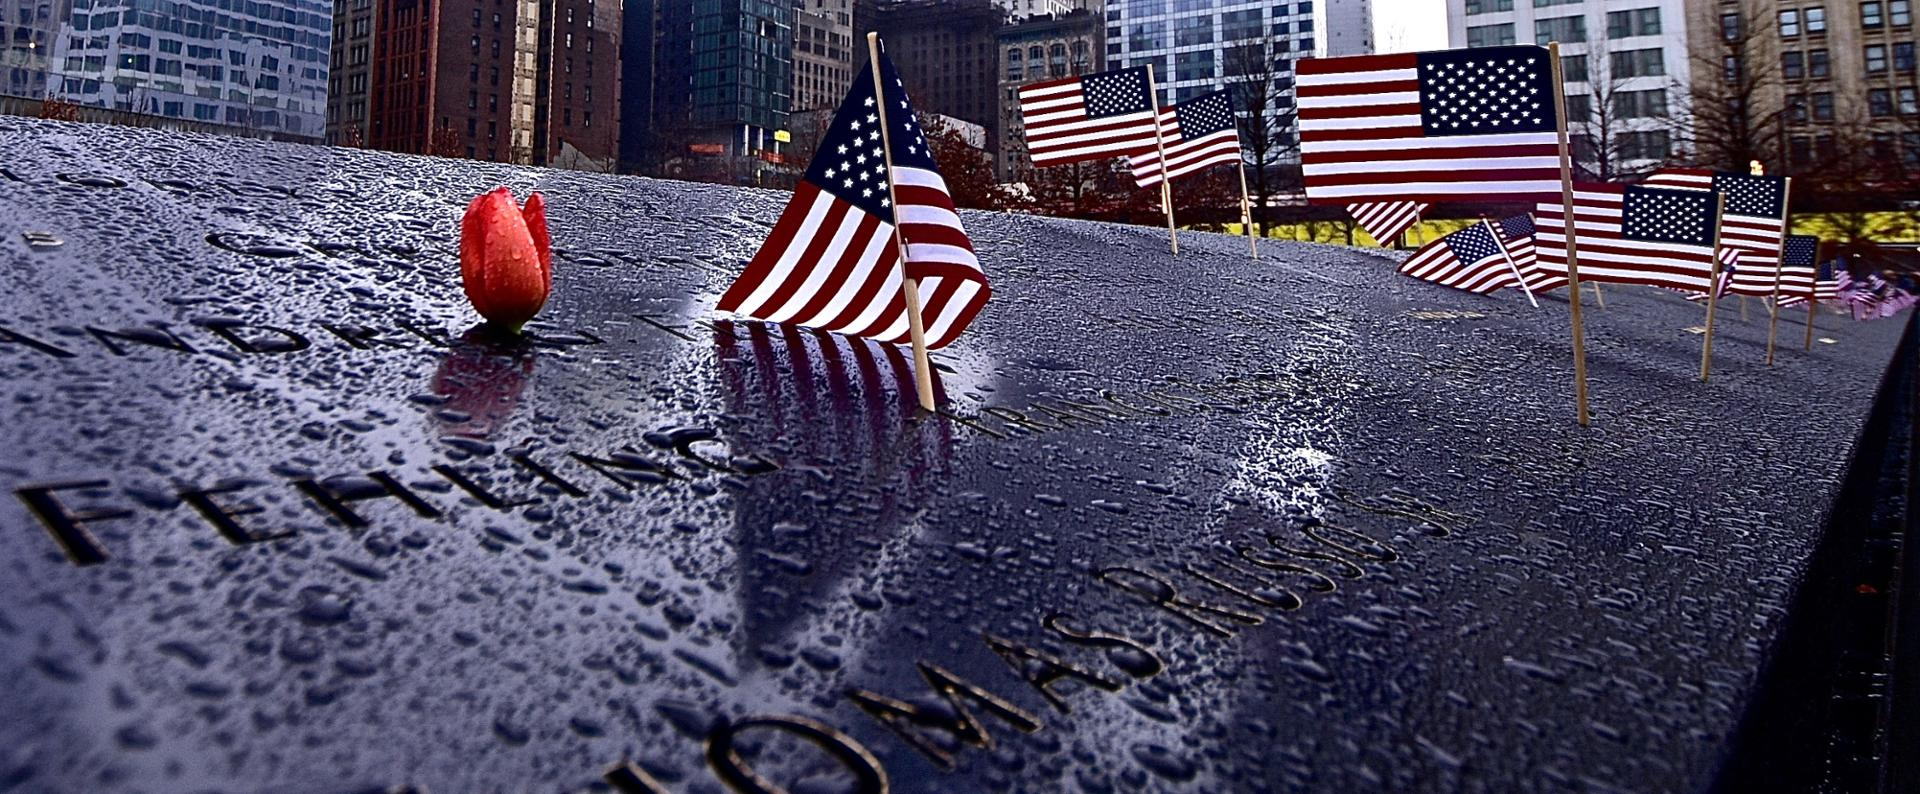 NYC - GROUND ZERO